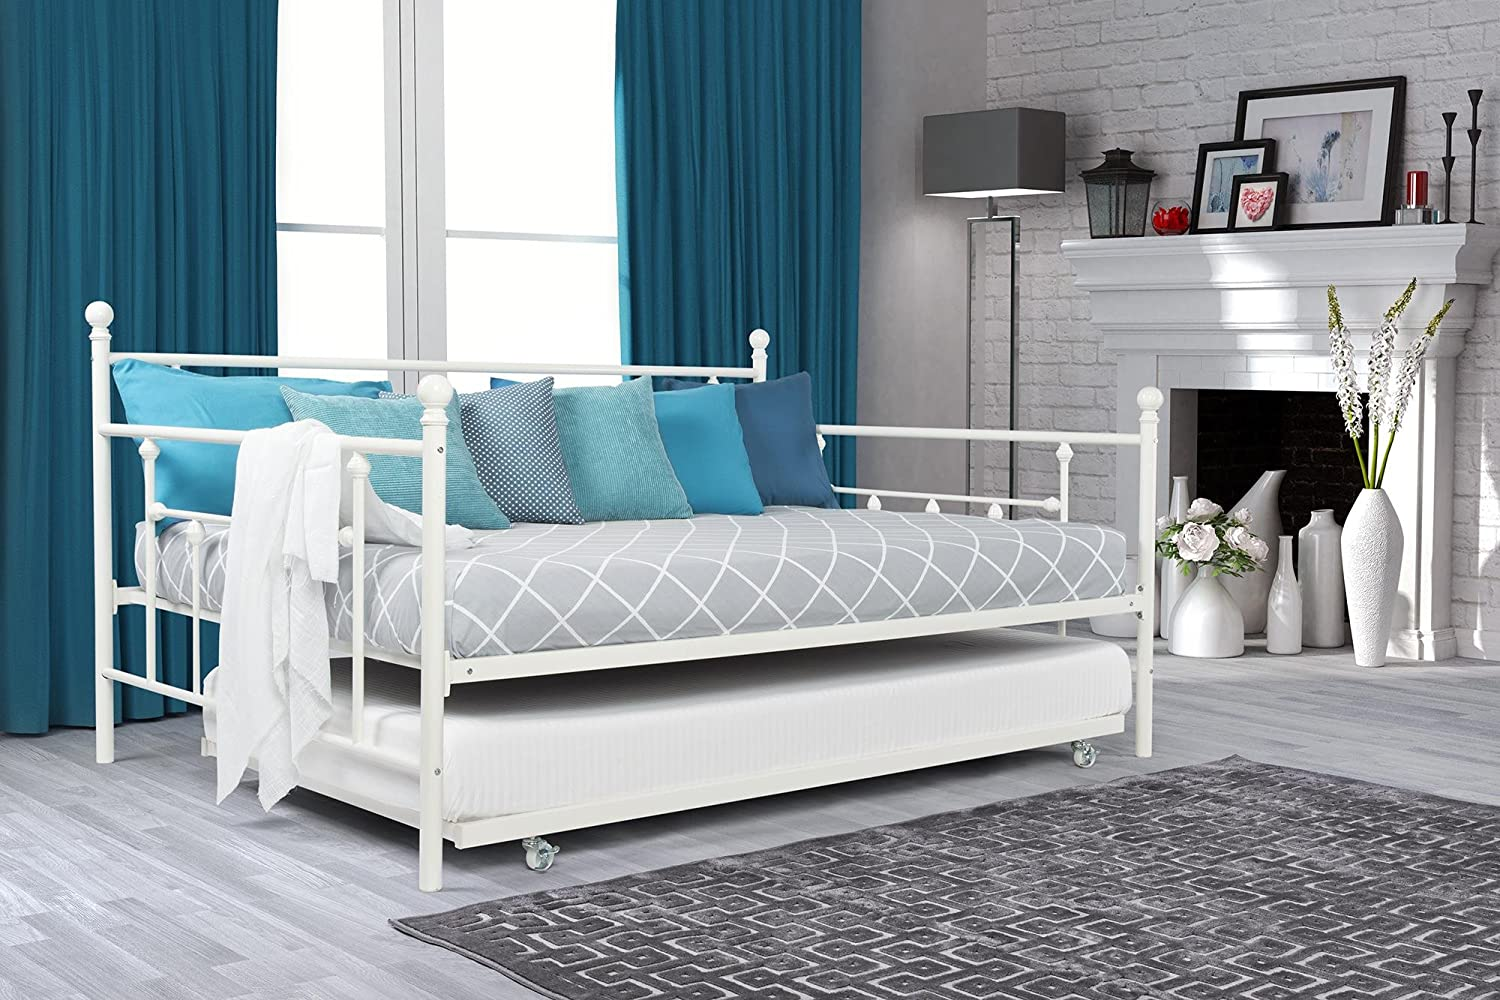 amazoncom dhp manila metal daybed and trundle full size daybed and twin size trundle white kitchen u0026 dining